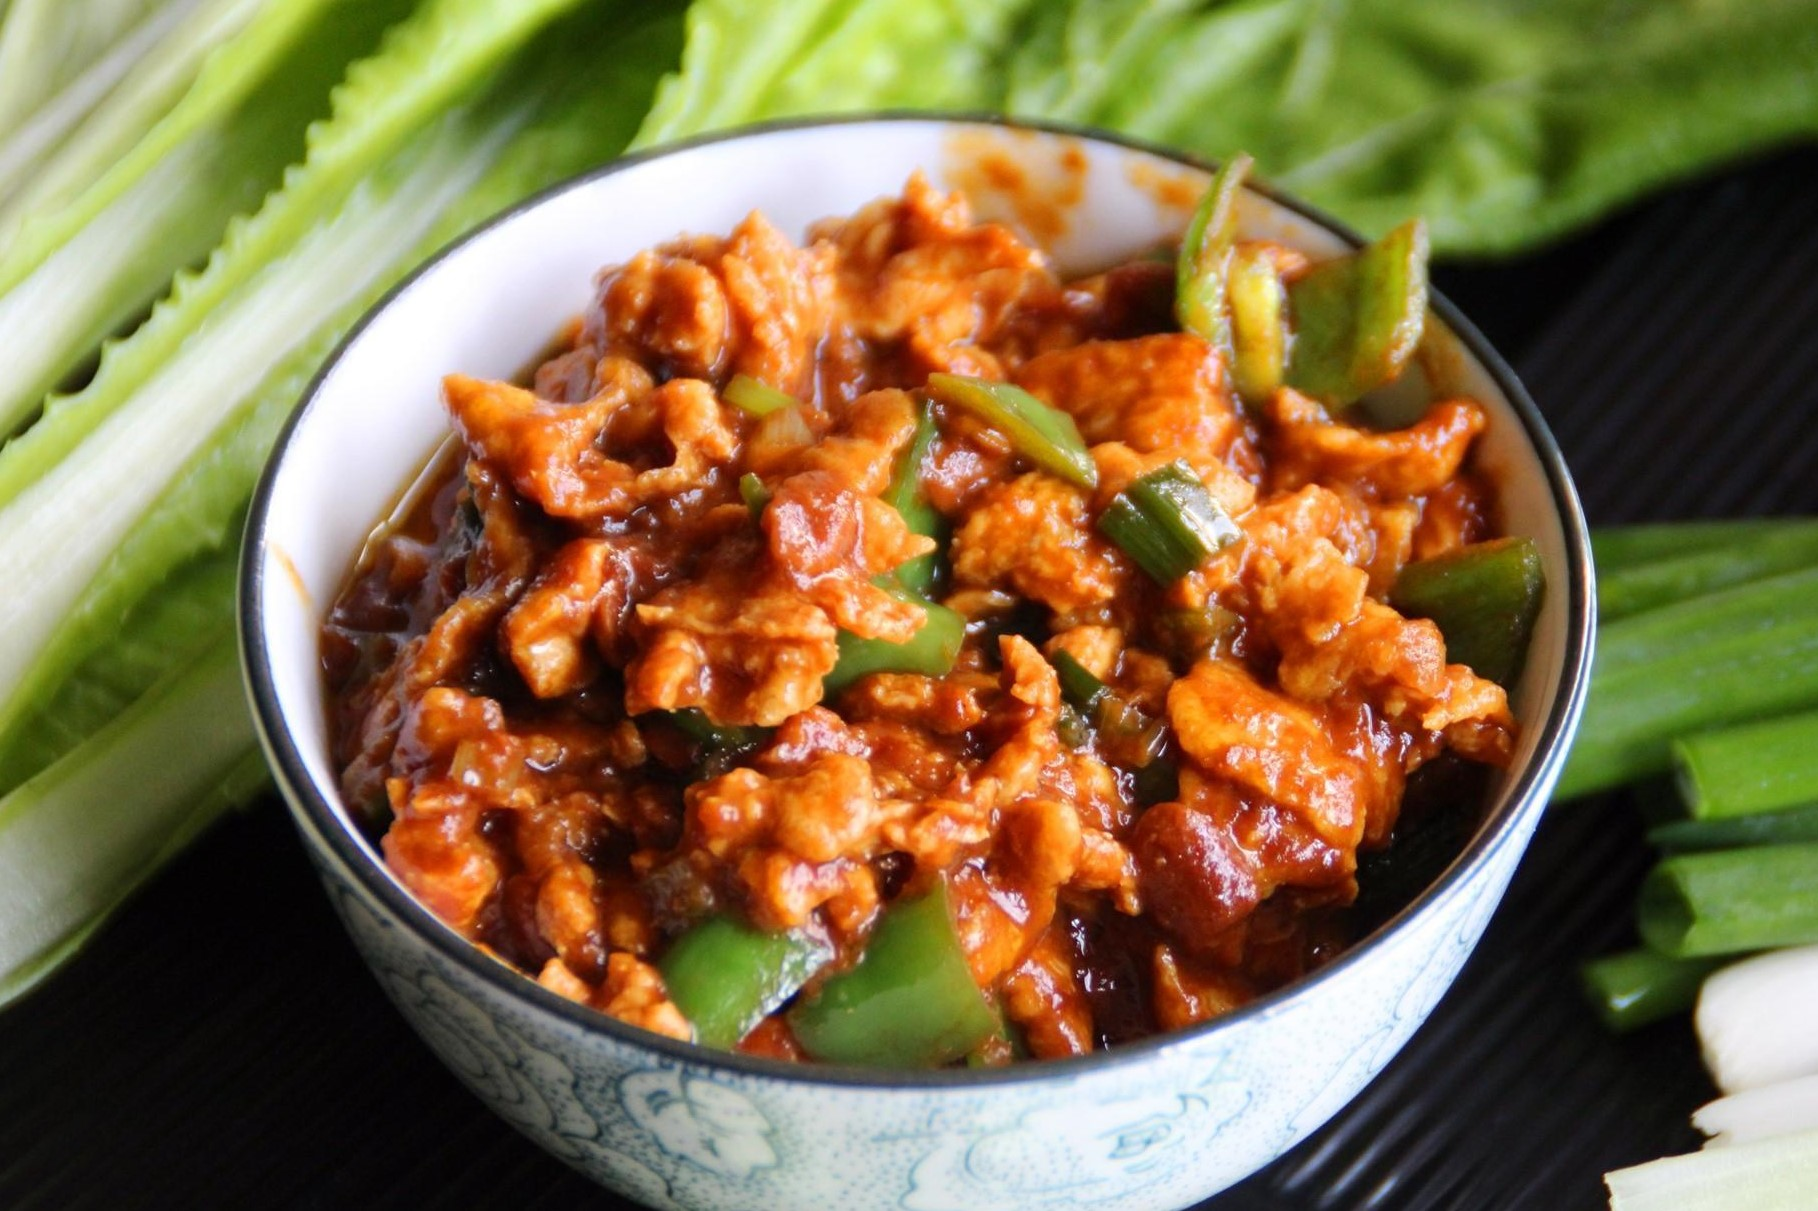 Fried Egg in Chinese Soybean Paste